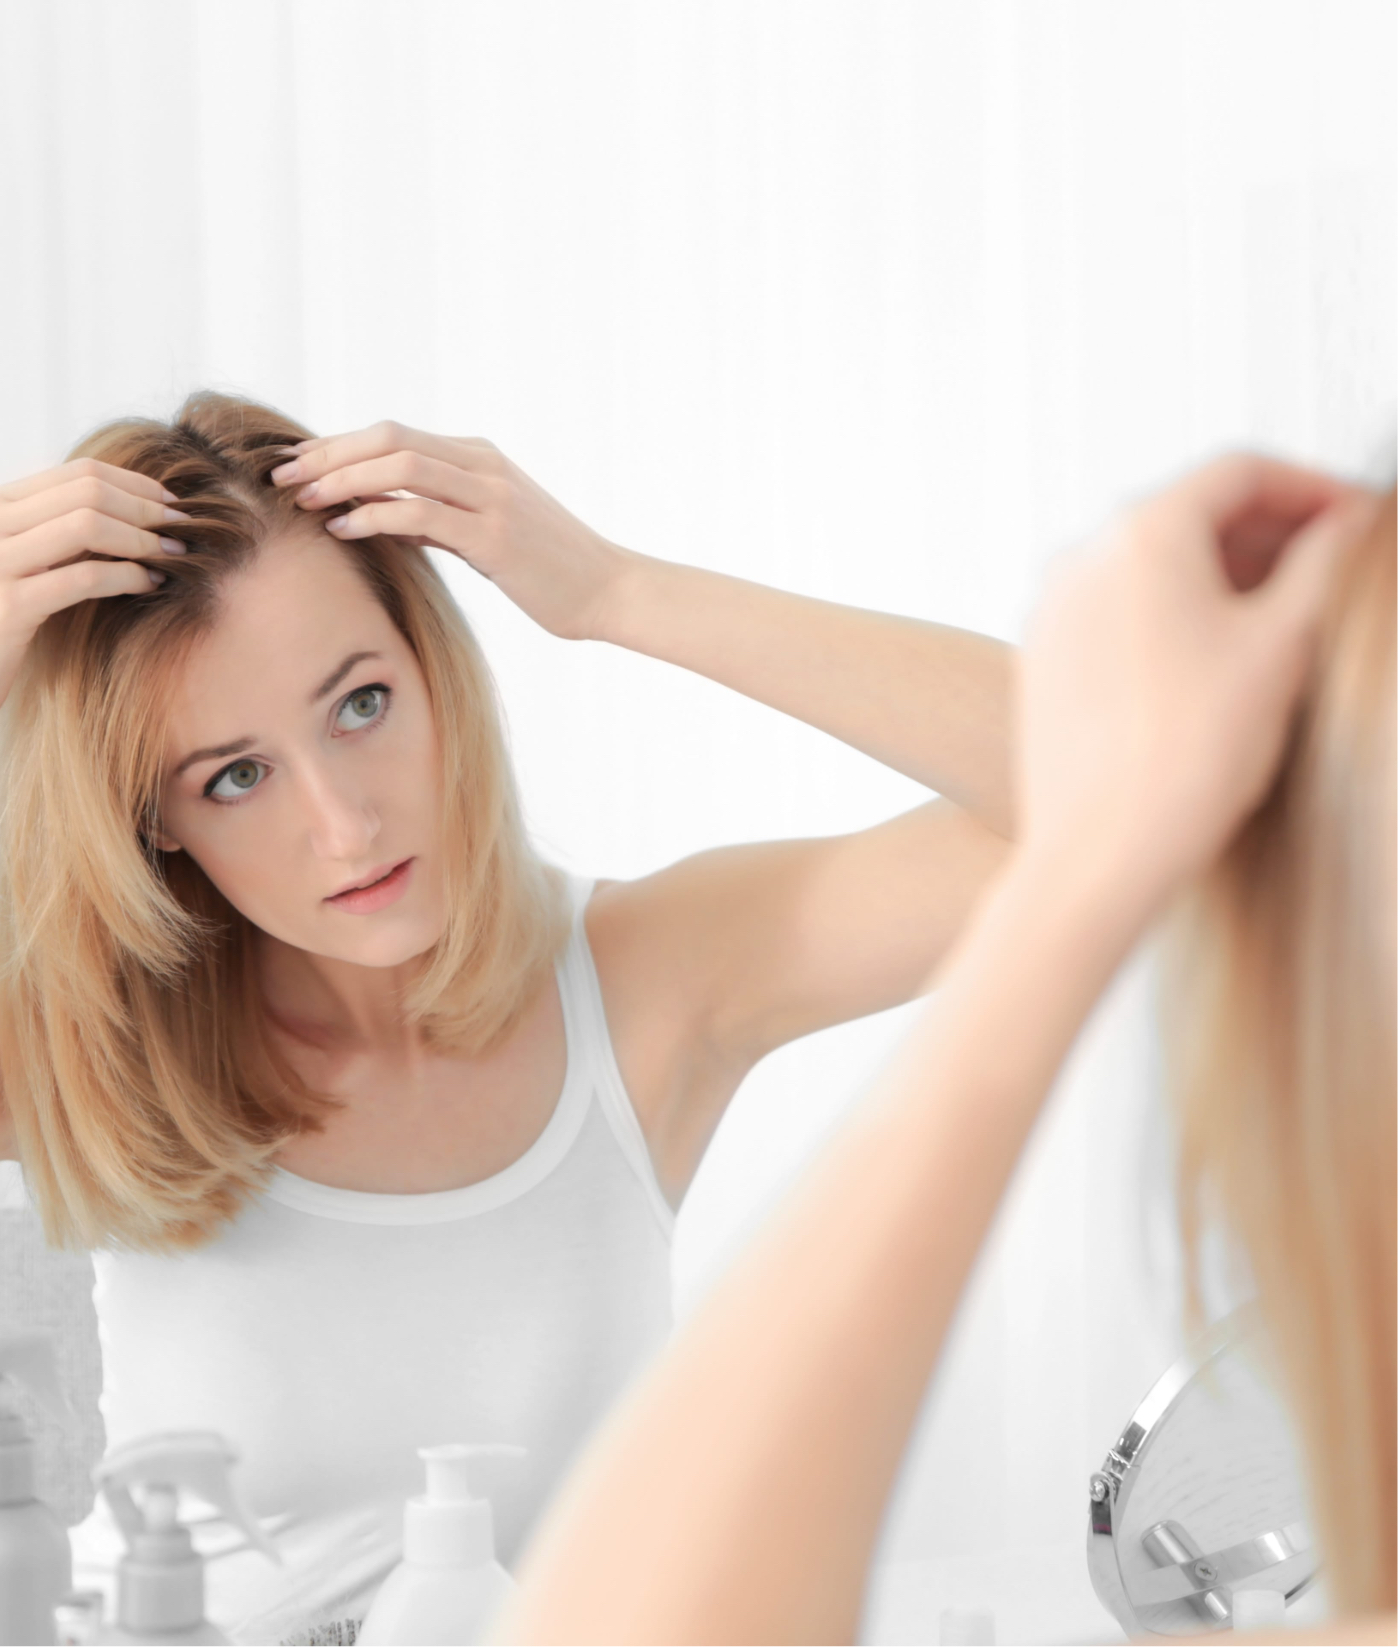 Woman inspecting her hair line in the mirror